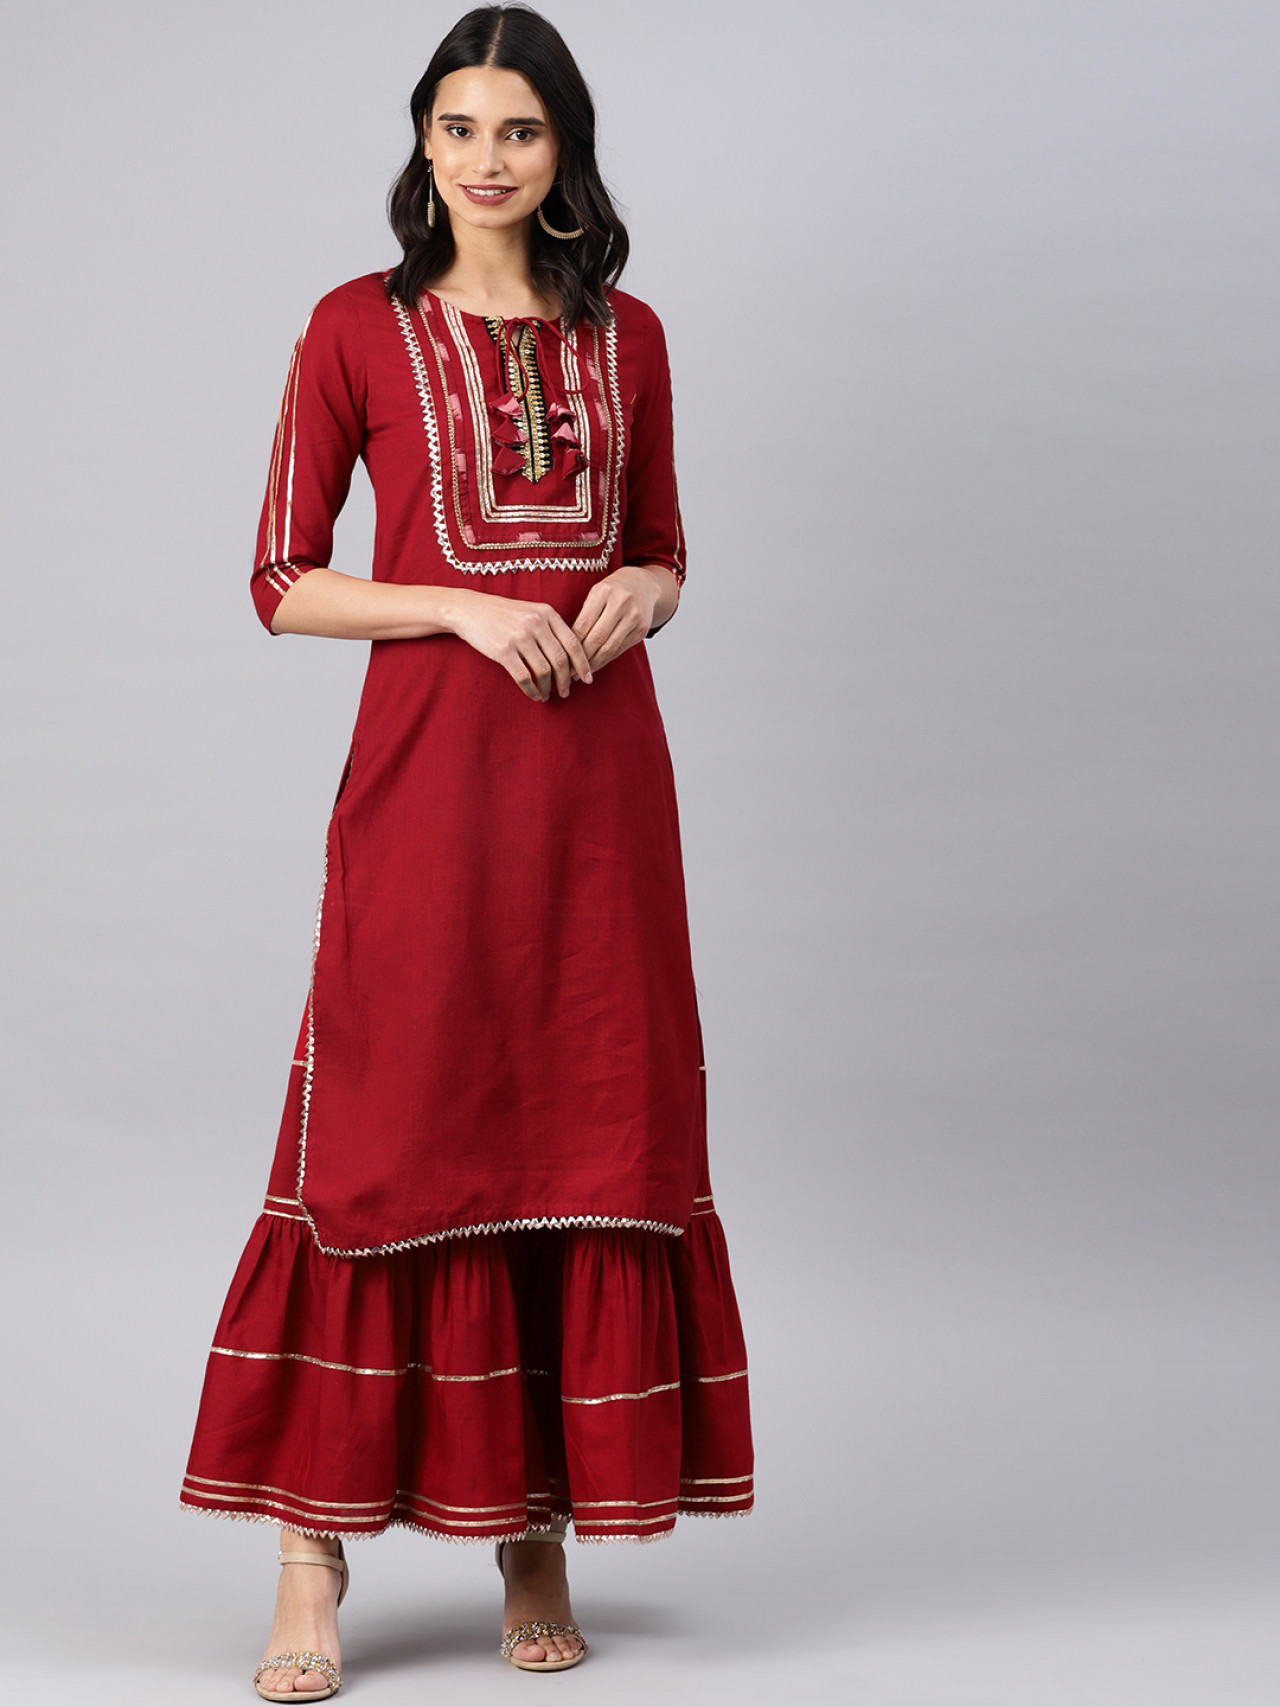 Indian Ethnic Wear Dress - Buy Traditional Maroon Indian Ethnic Dress For Womens in India | Ethnicbazaar